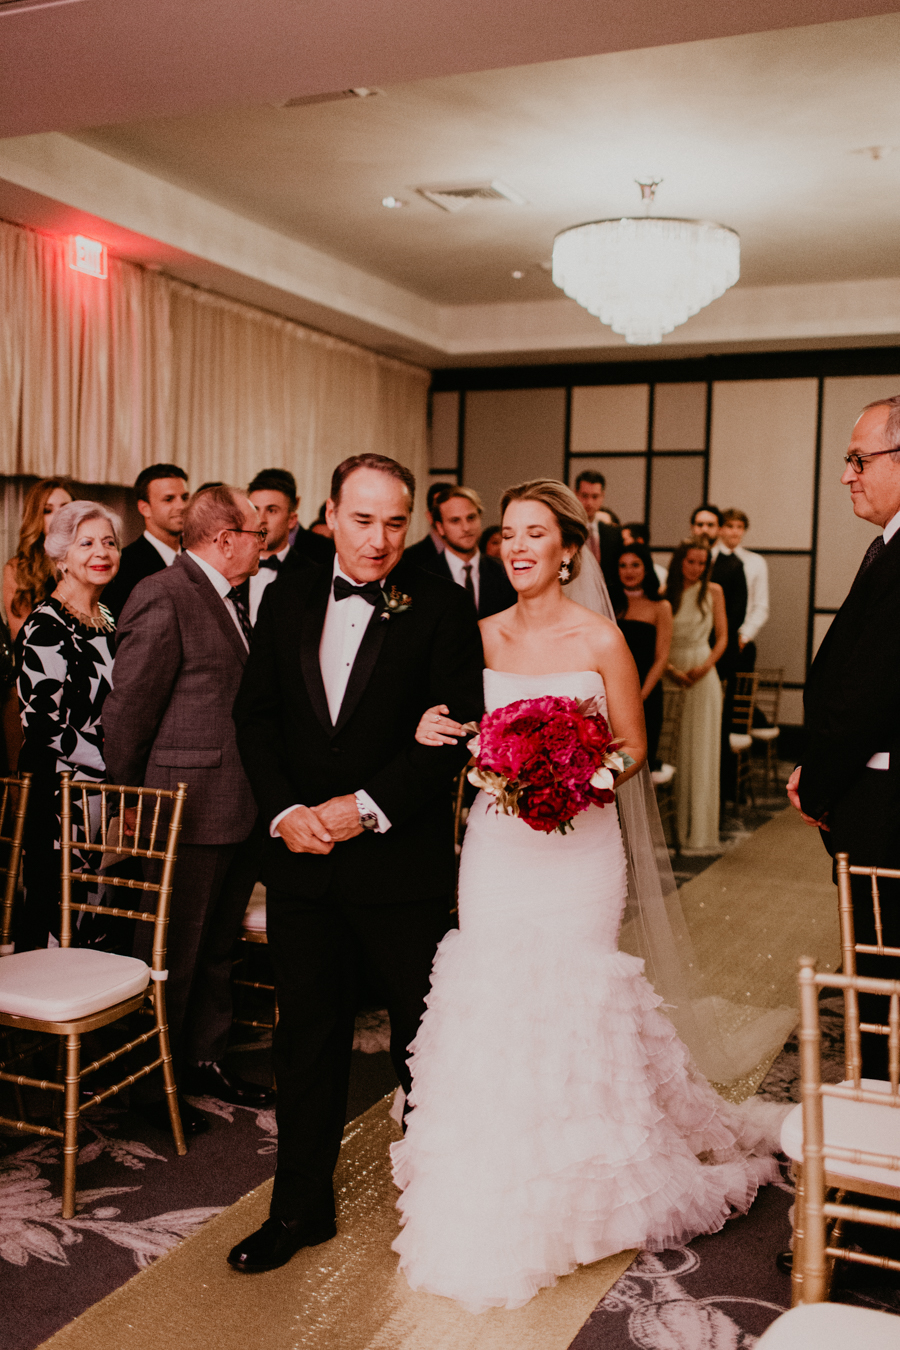 Loren and Alex Kuznetsov Gold and Burgundy wedding at Epicurean Tampa Royal Fall Wedding in Tampa Florida Inside Weddings MD Events Tampa-55.jpg